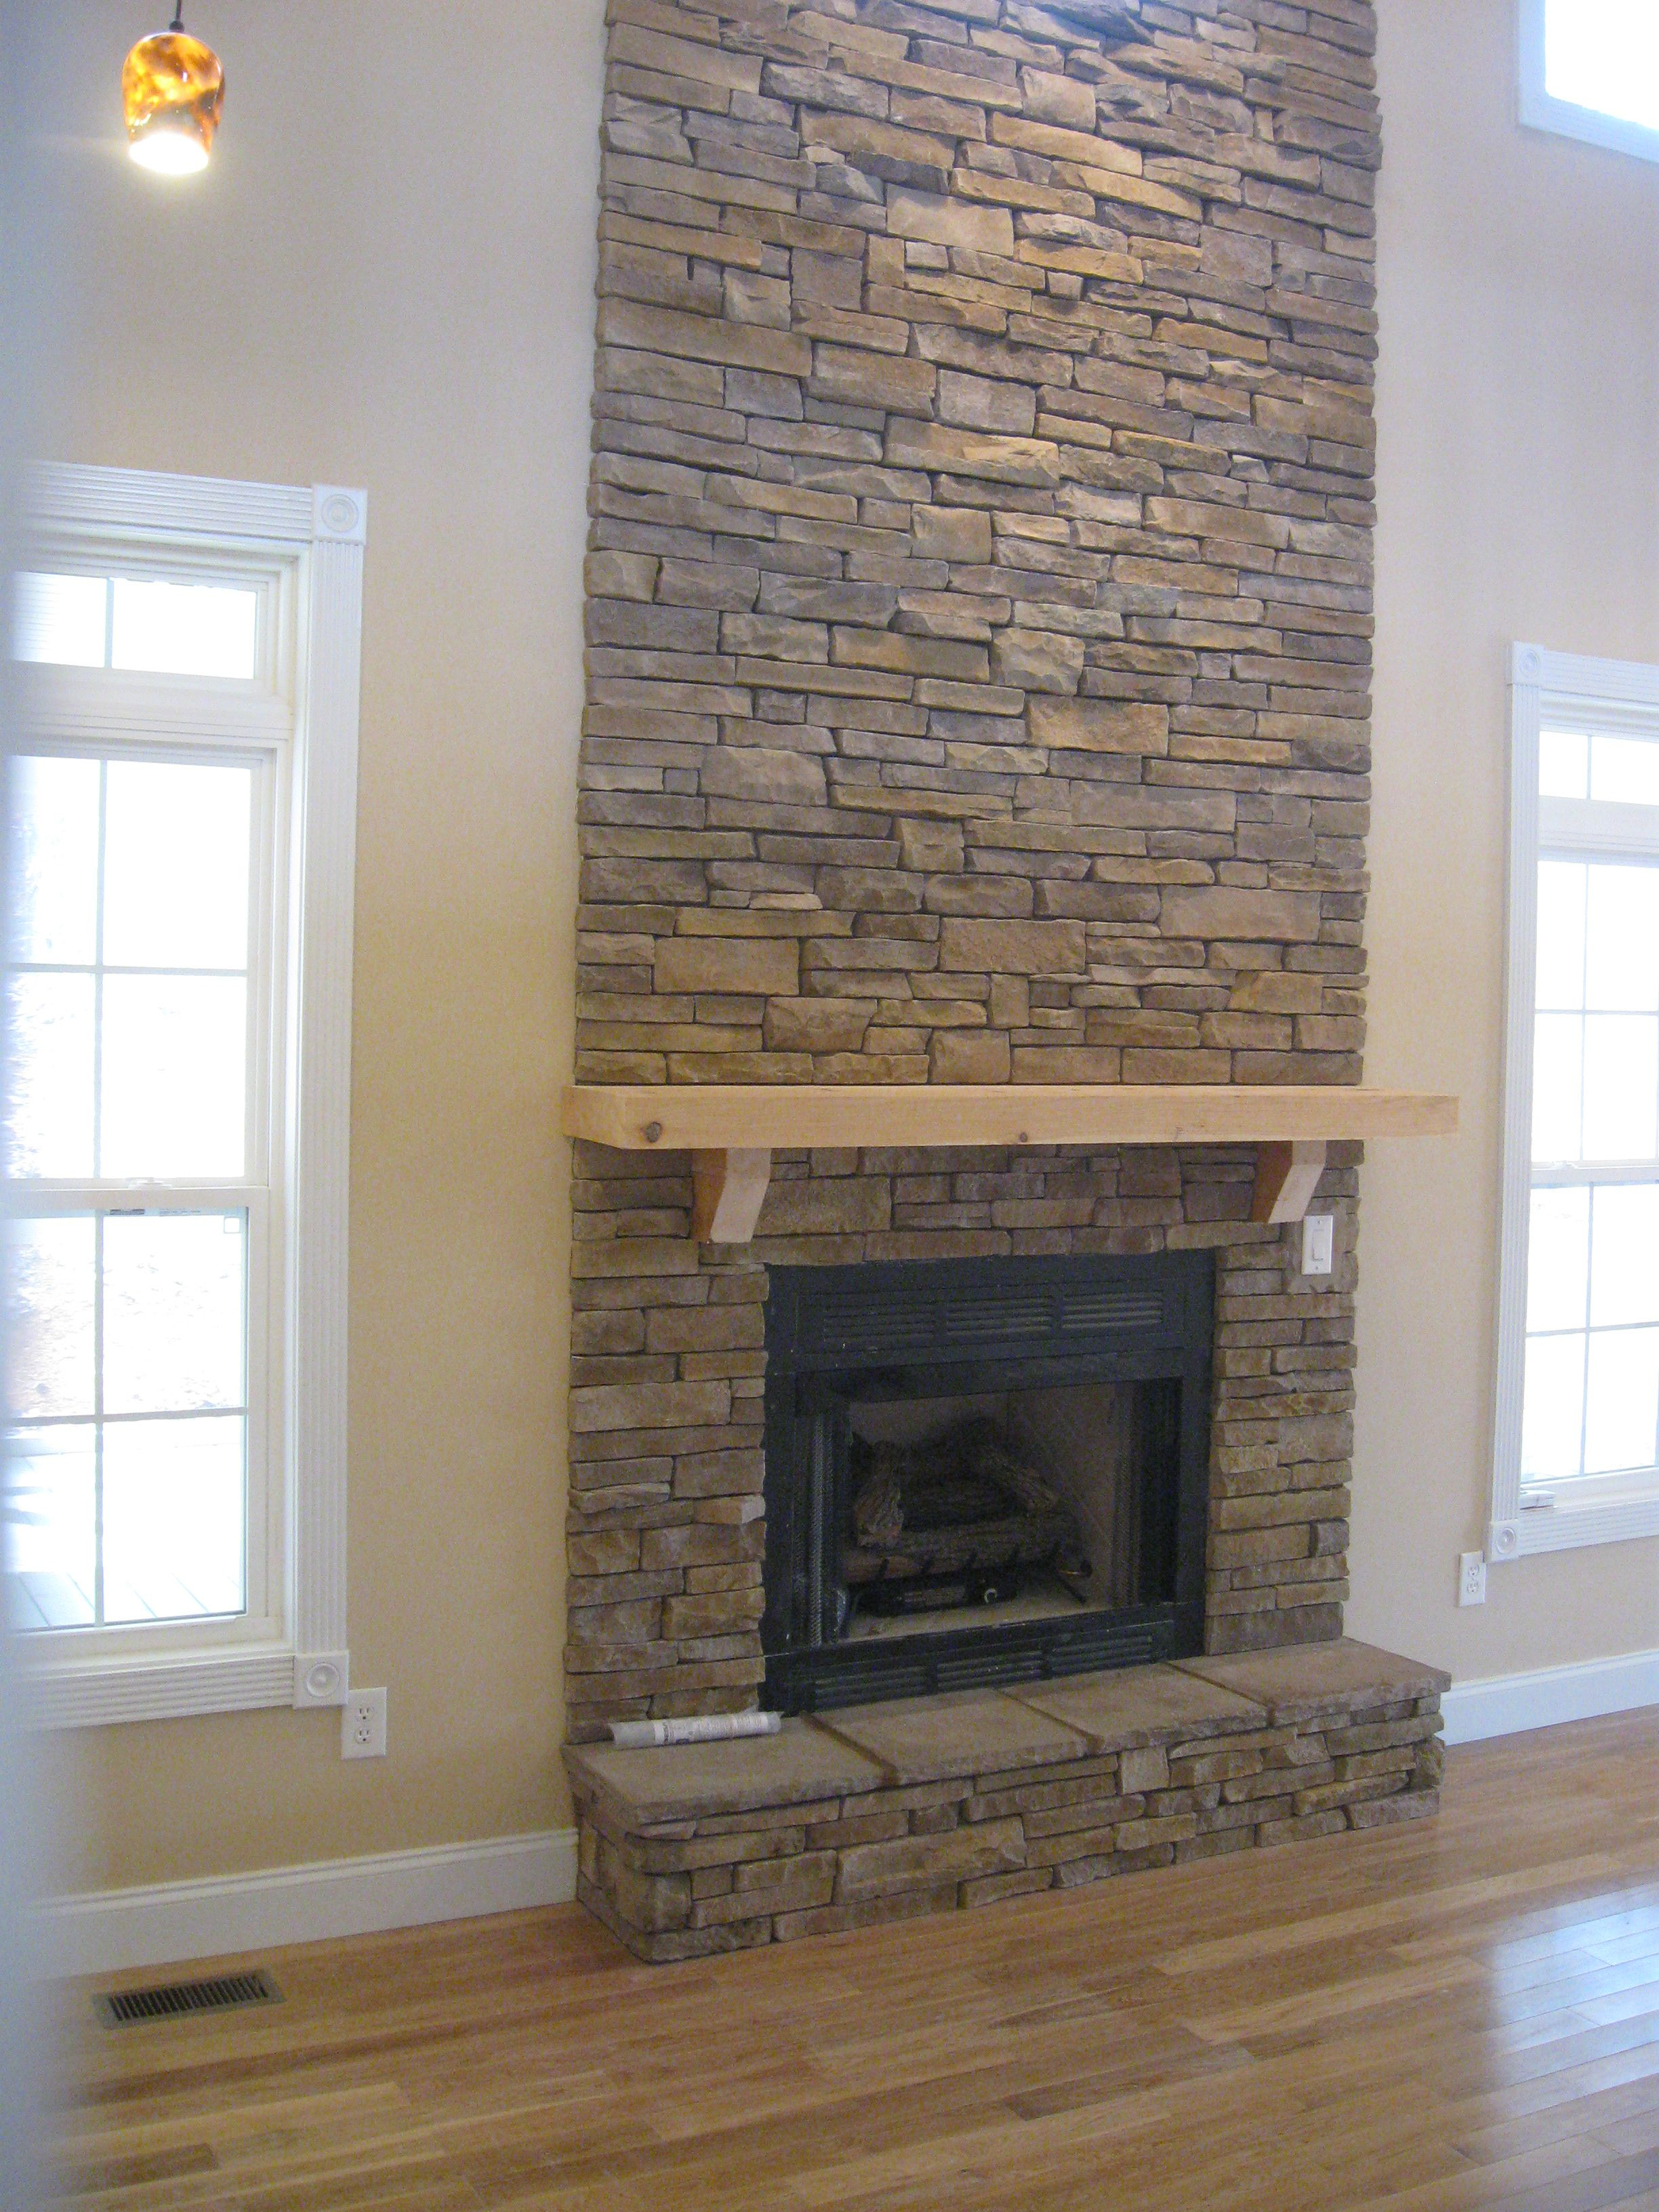 We accented this stone fireplace with a large mirror and a model